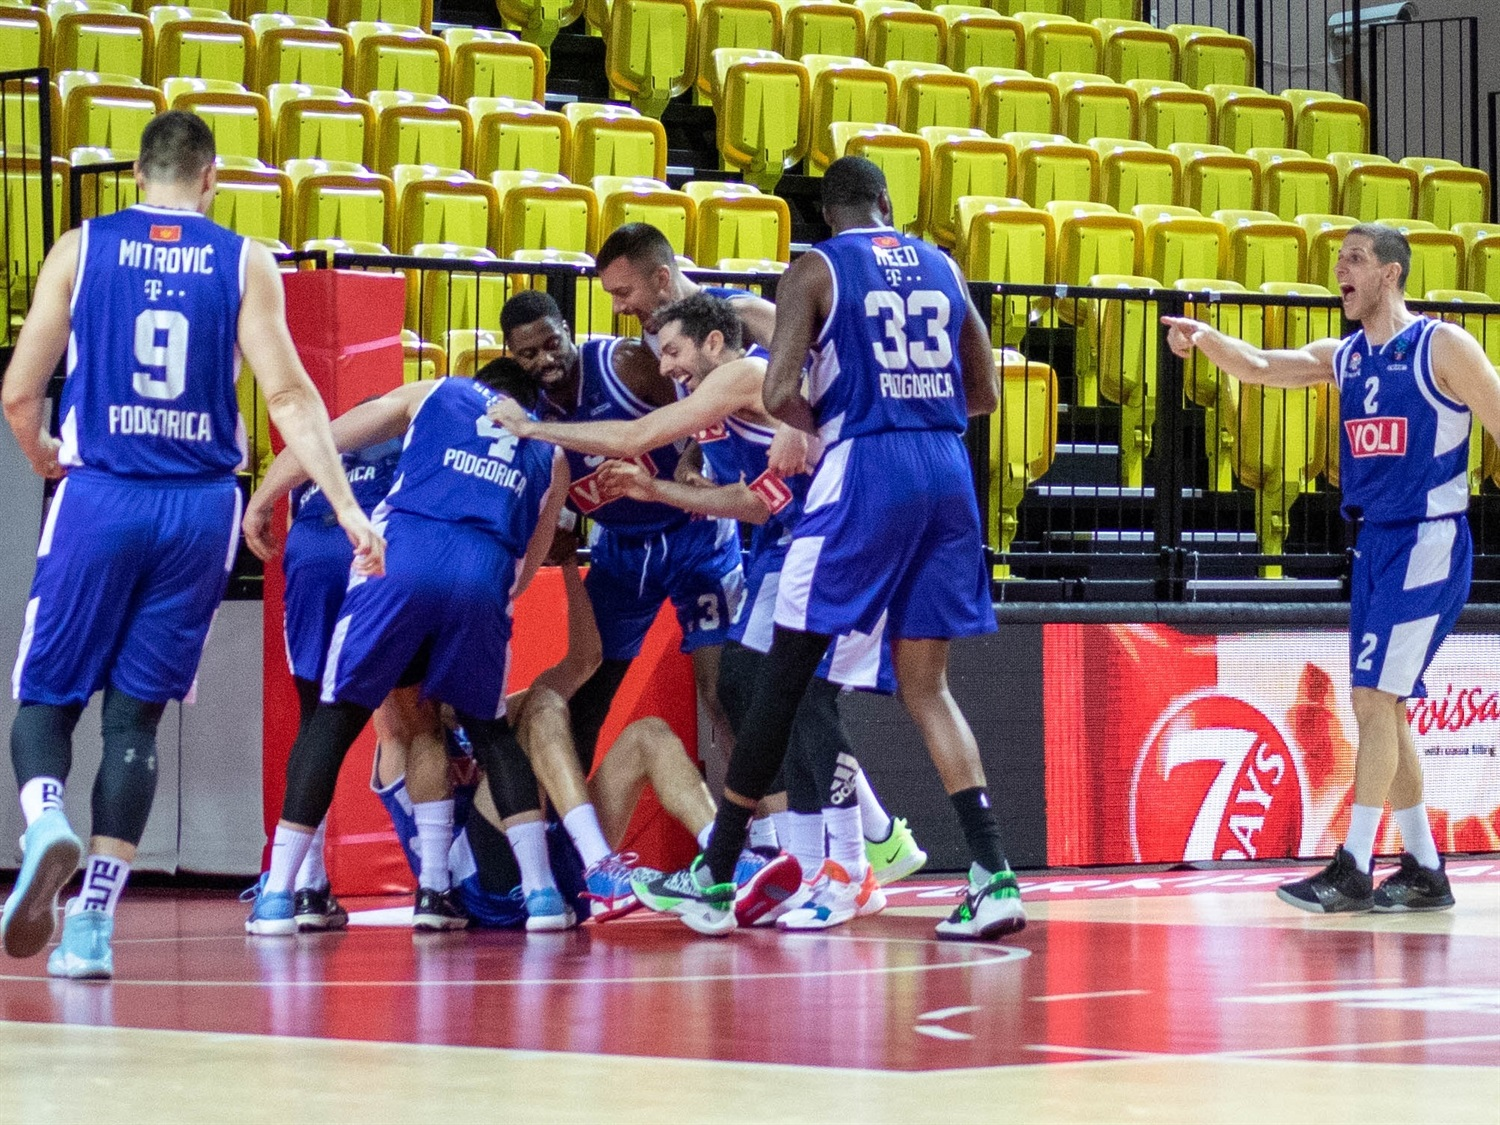 Buducnost VOLI Podgorica celebrates (photo Monaco) - EC20